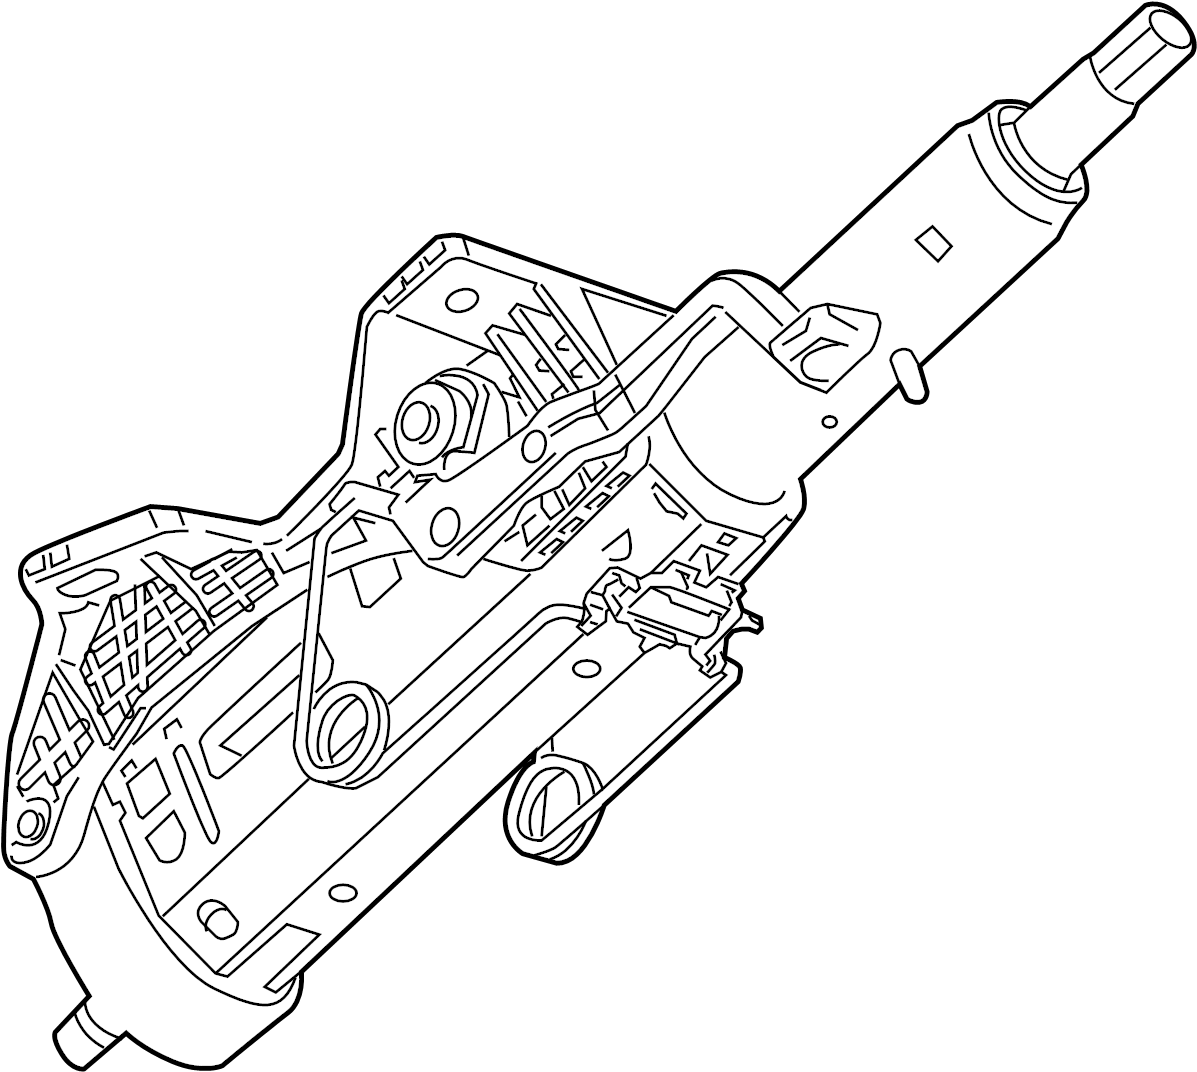 Buick Regal Steering Column Column Assembly